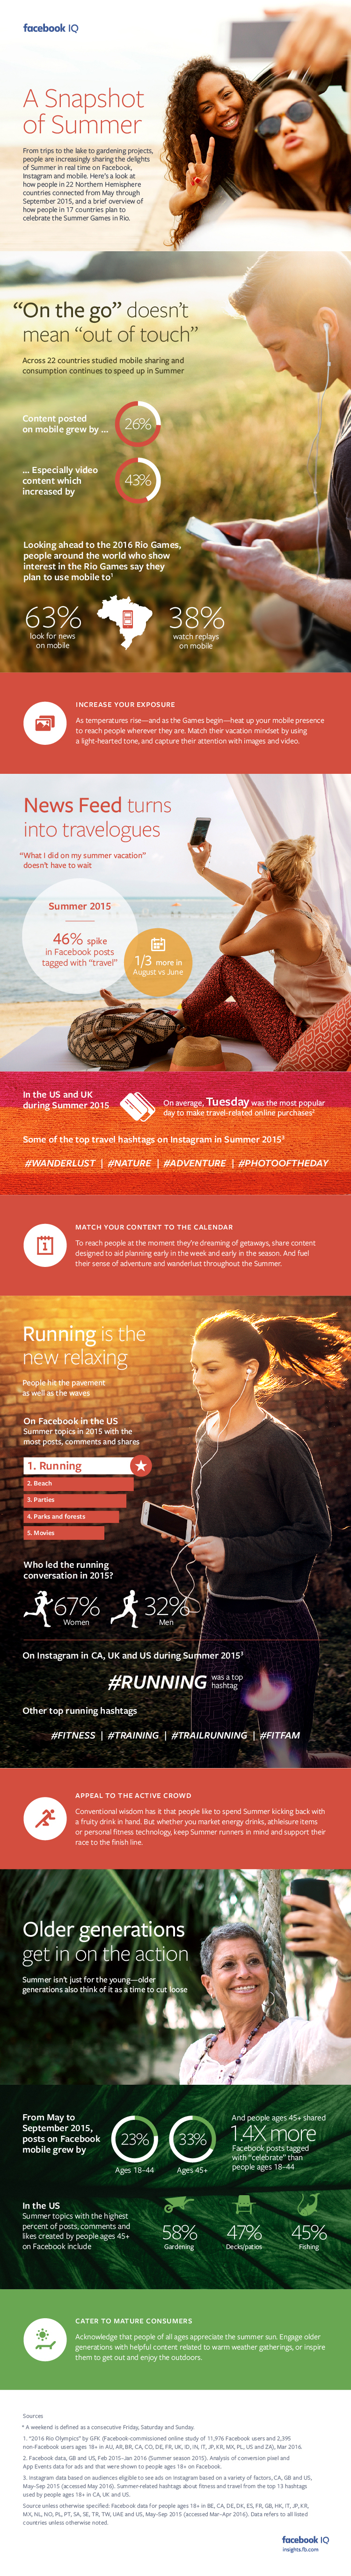 Facebook Releases Data on Usage Trends Over Summer [Infographic] | Social Media Today